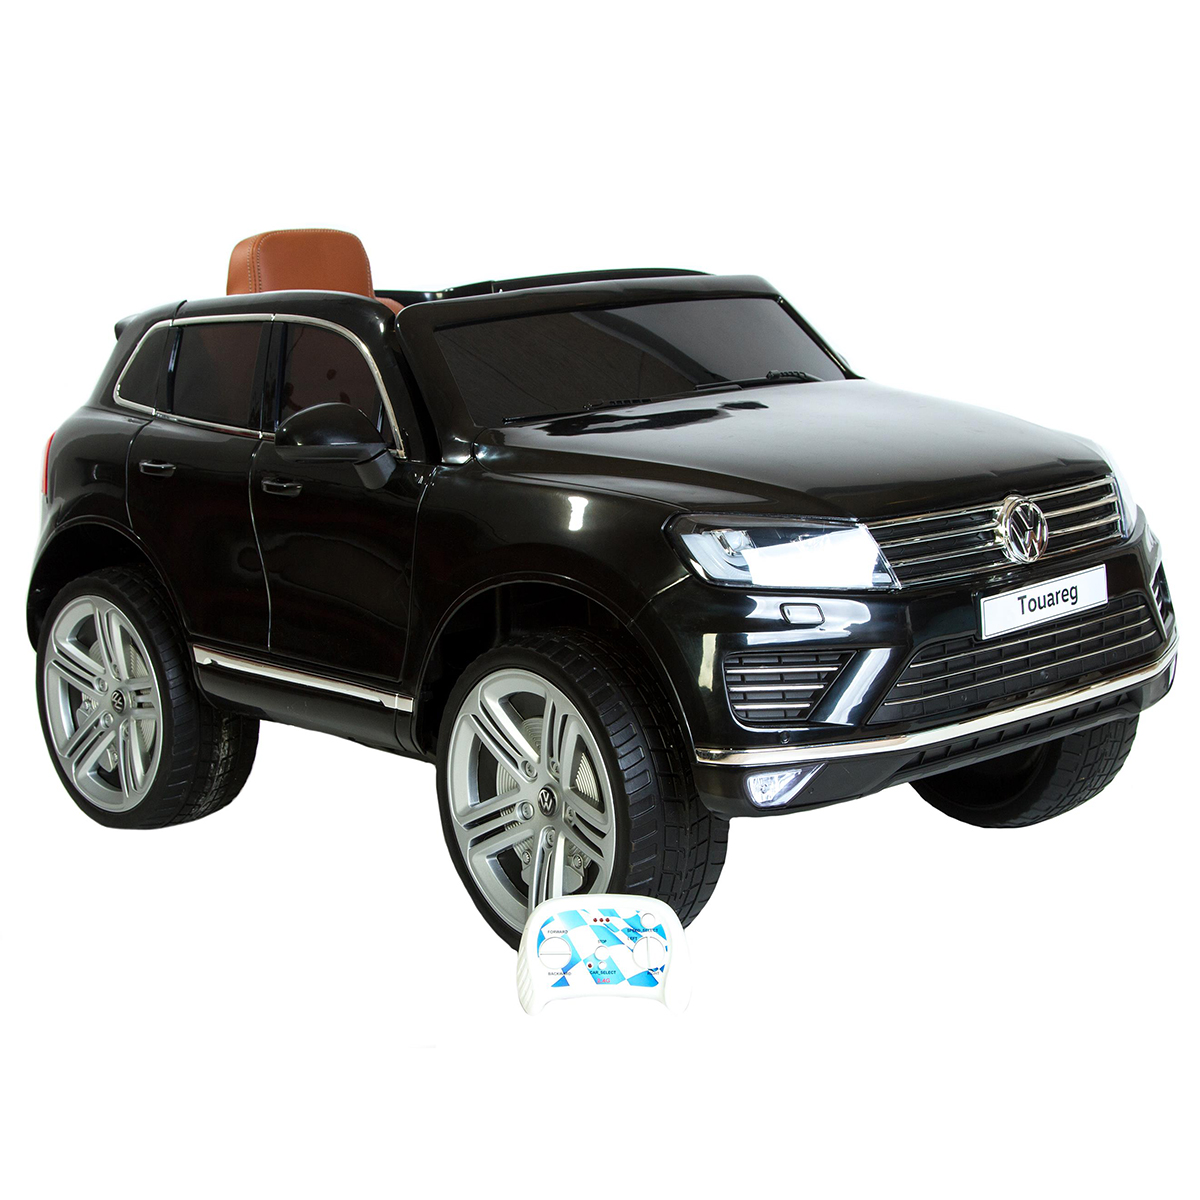 VW elbil - Touareg - Sort